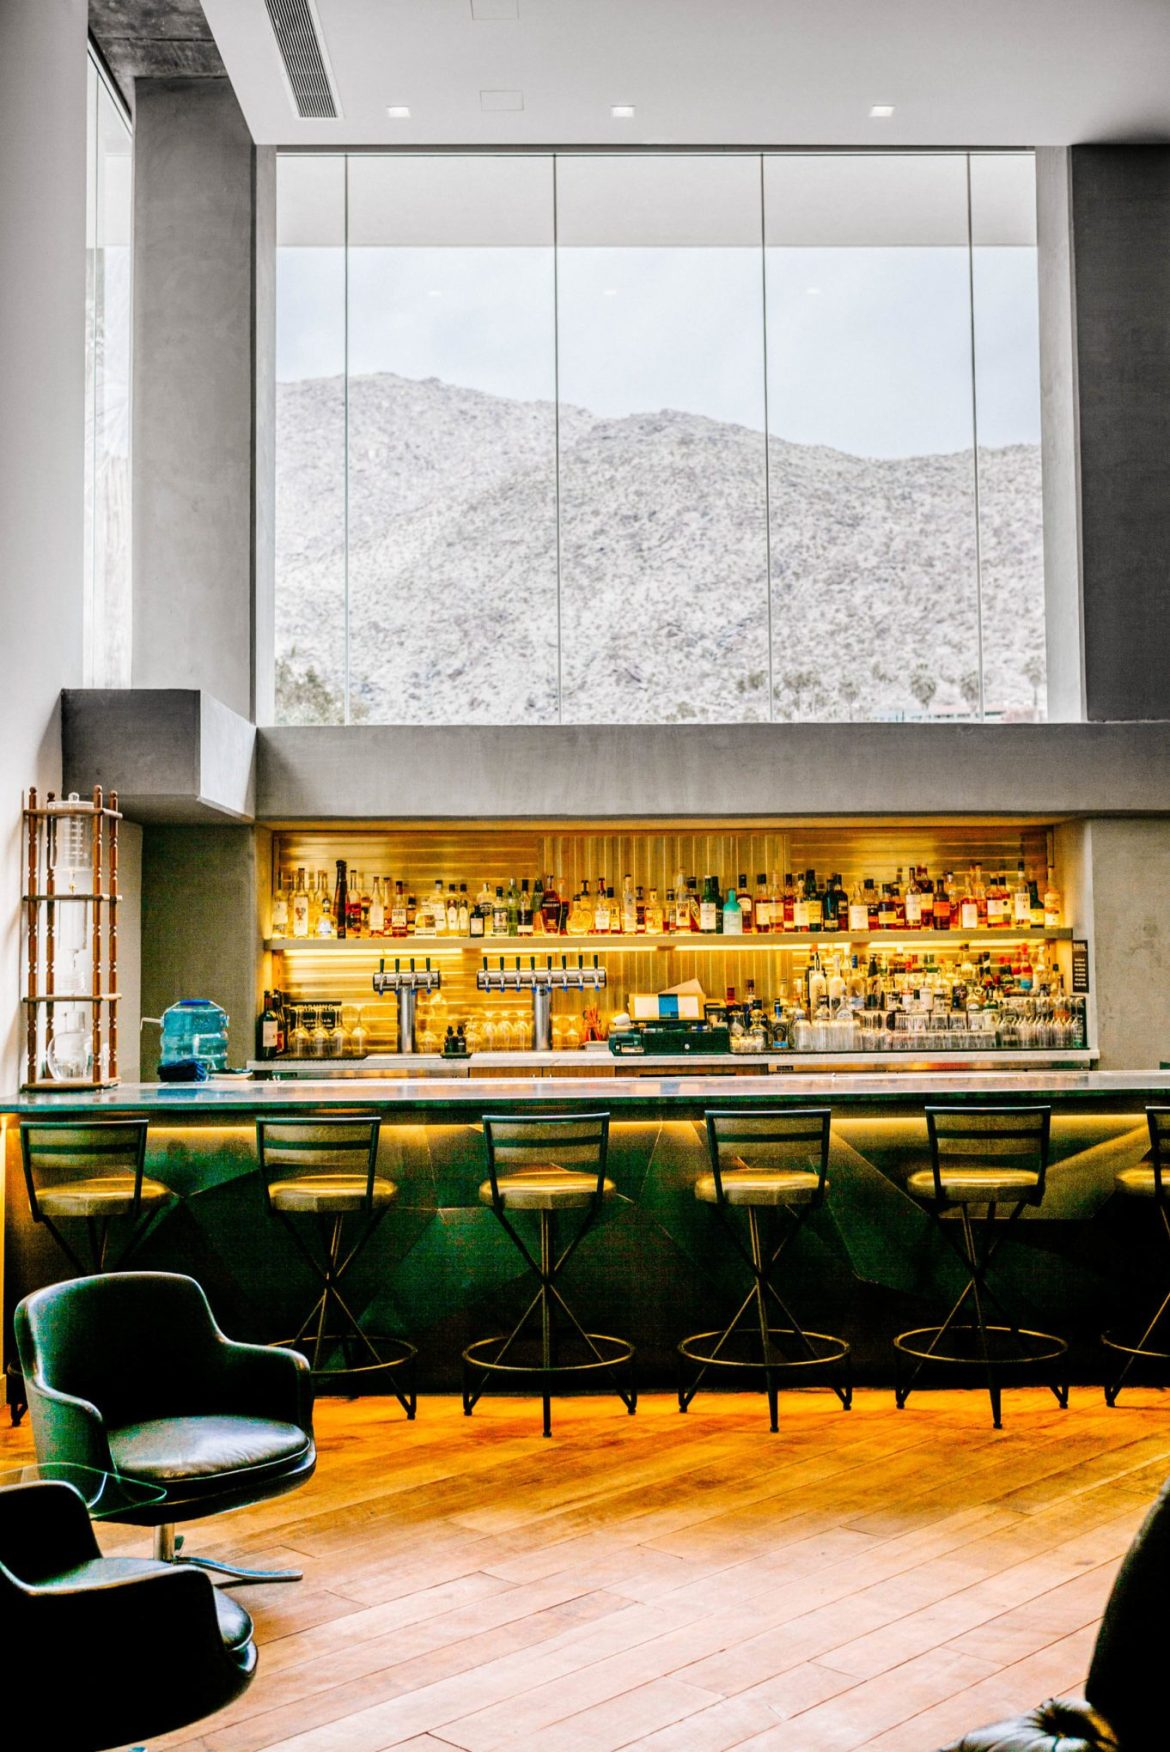 When you stay at the Kimpton Rowan Hotel in Palm Springs there's a fantastic bar with a view and wine happy hour, it's a dessert retreat, is clean, and modern, The Taste Edit